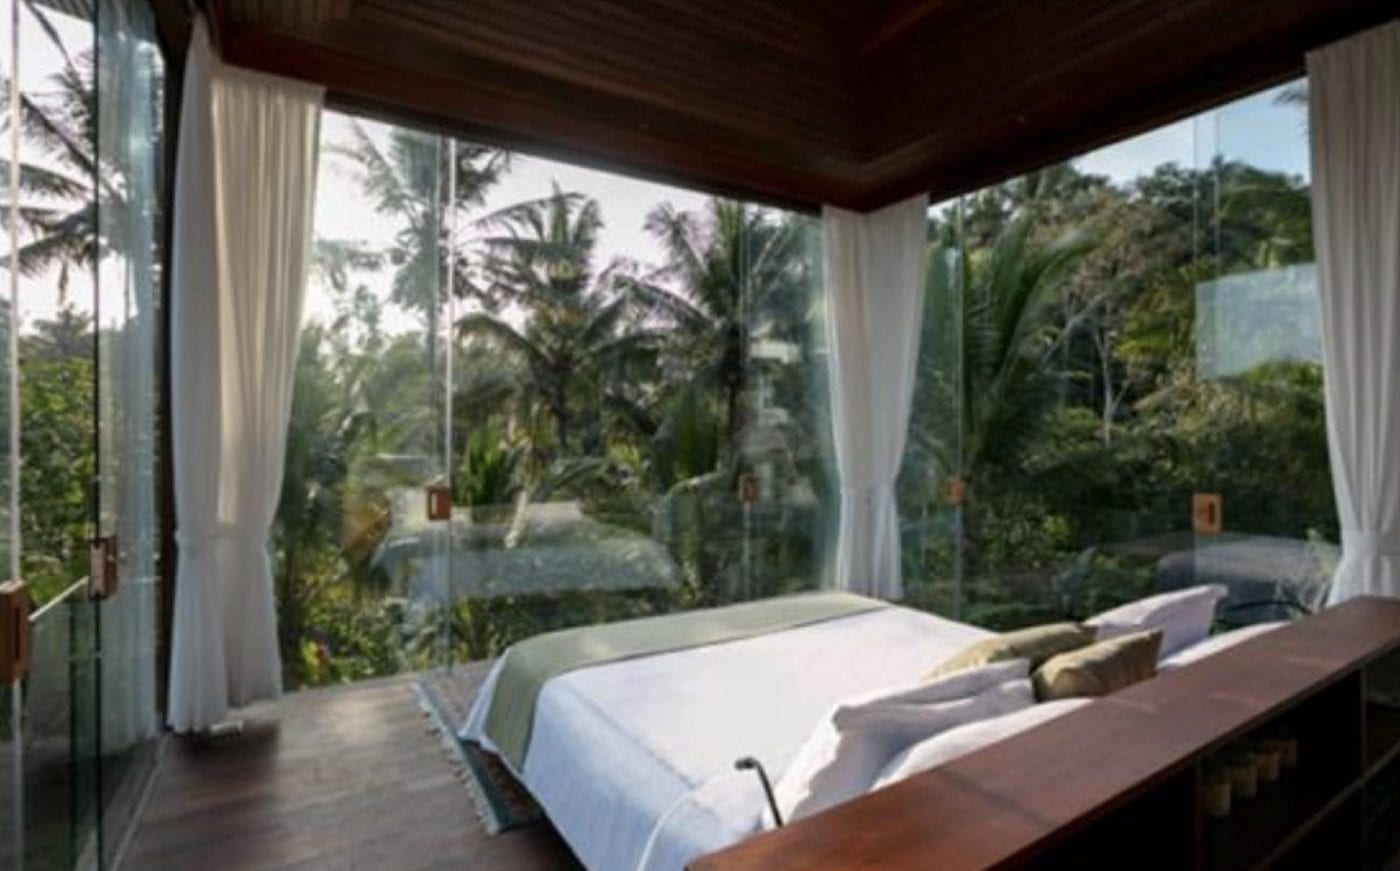 Bliss Sanctuary for Women offers unlimited spa treatments and jungle view rooms